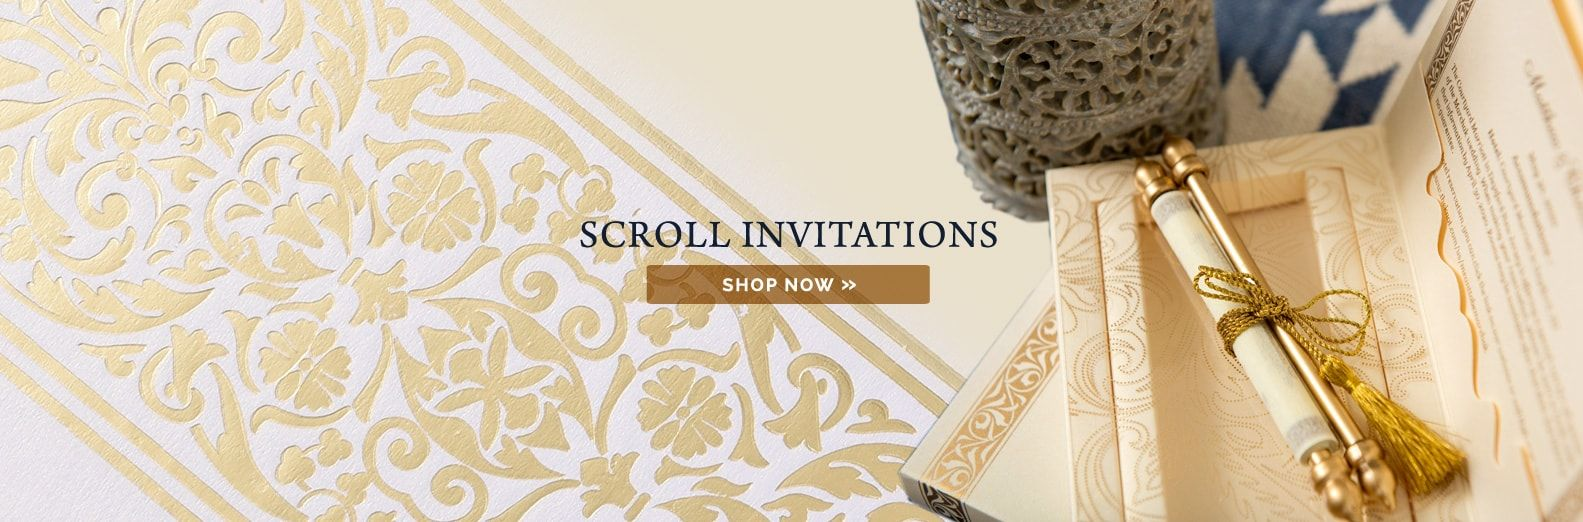 Indian Wedding Cards Scroll Wedding Invitations Theme Wedding